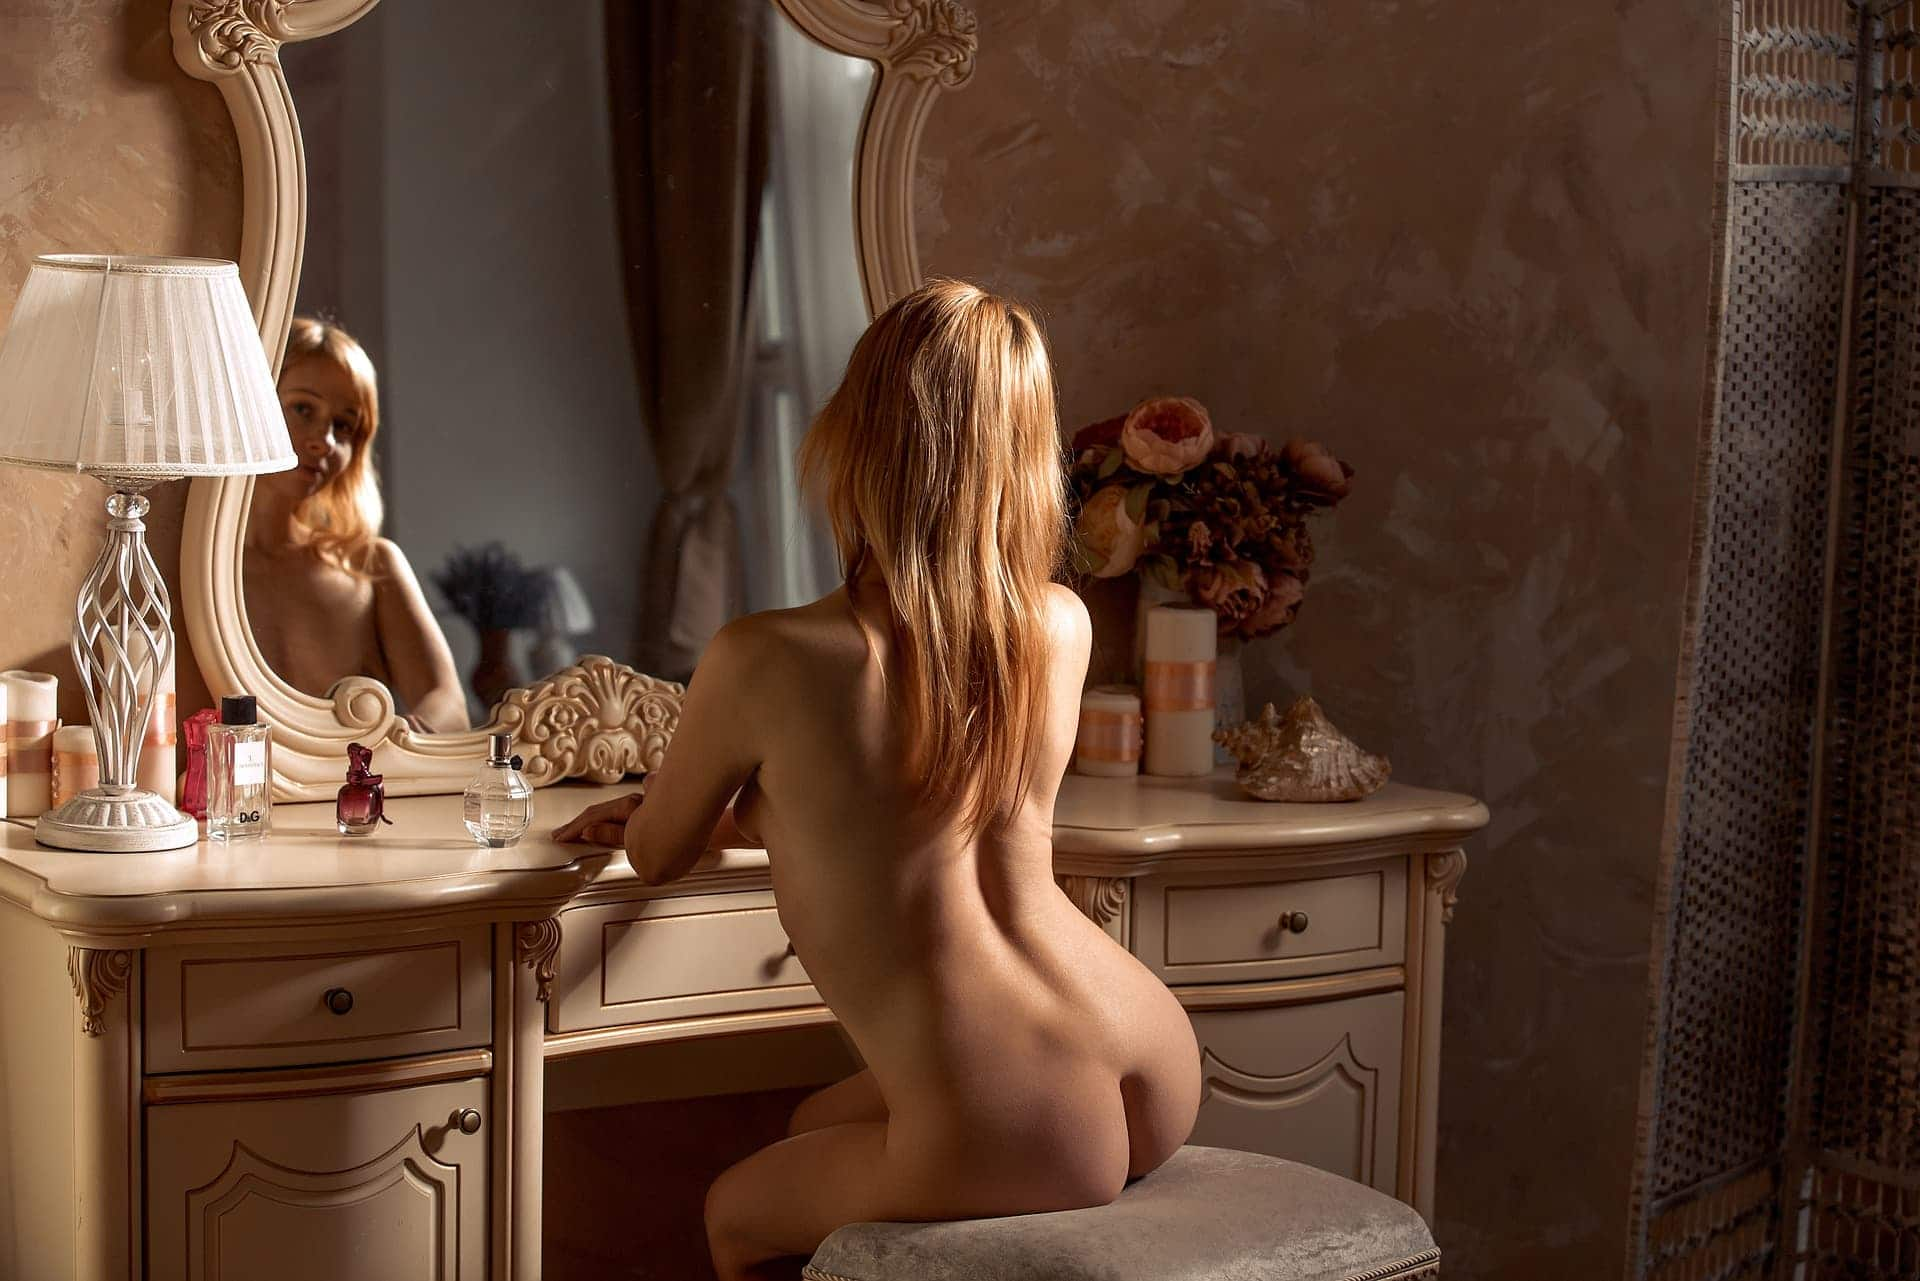 Beautiful blonde woman Victoria Borodinova sitting in the nude in front of a vintage dresser for a boudoir photoshoot showing her magnificent body